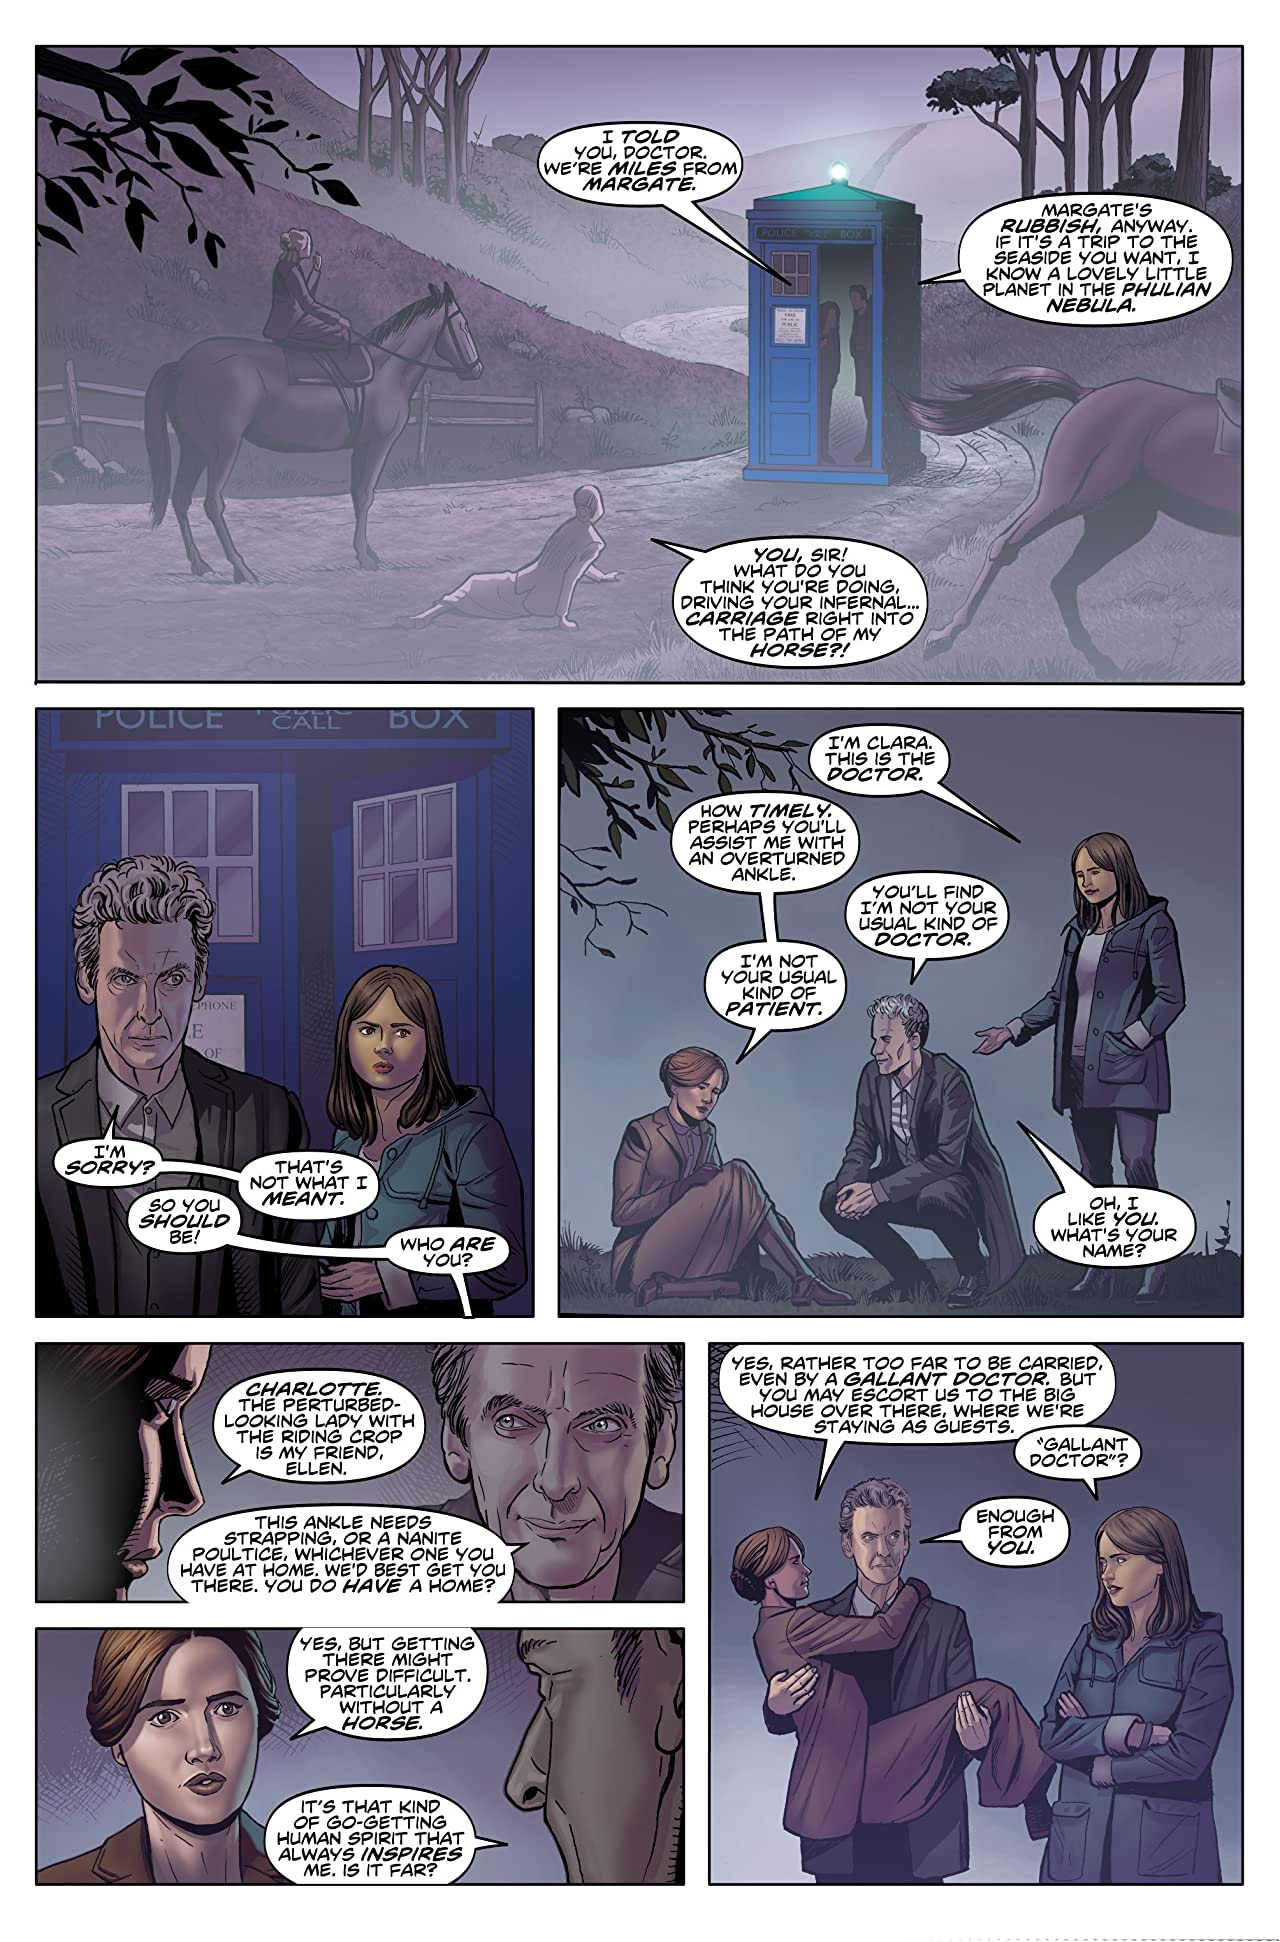 Doctor Who: The Twelfth Doctor #11